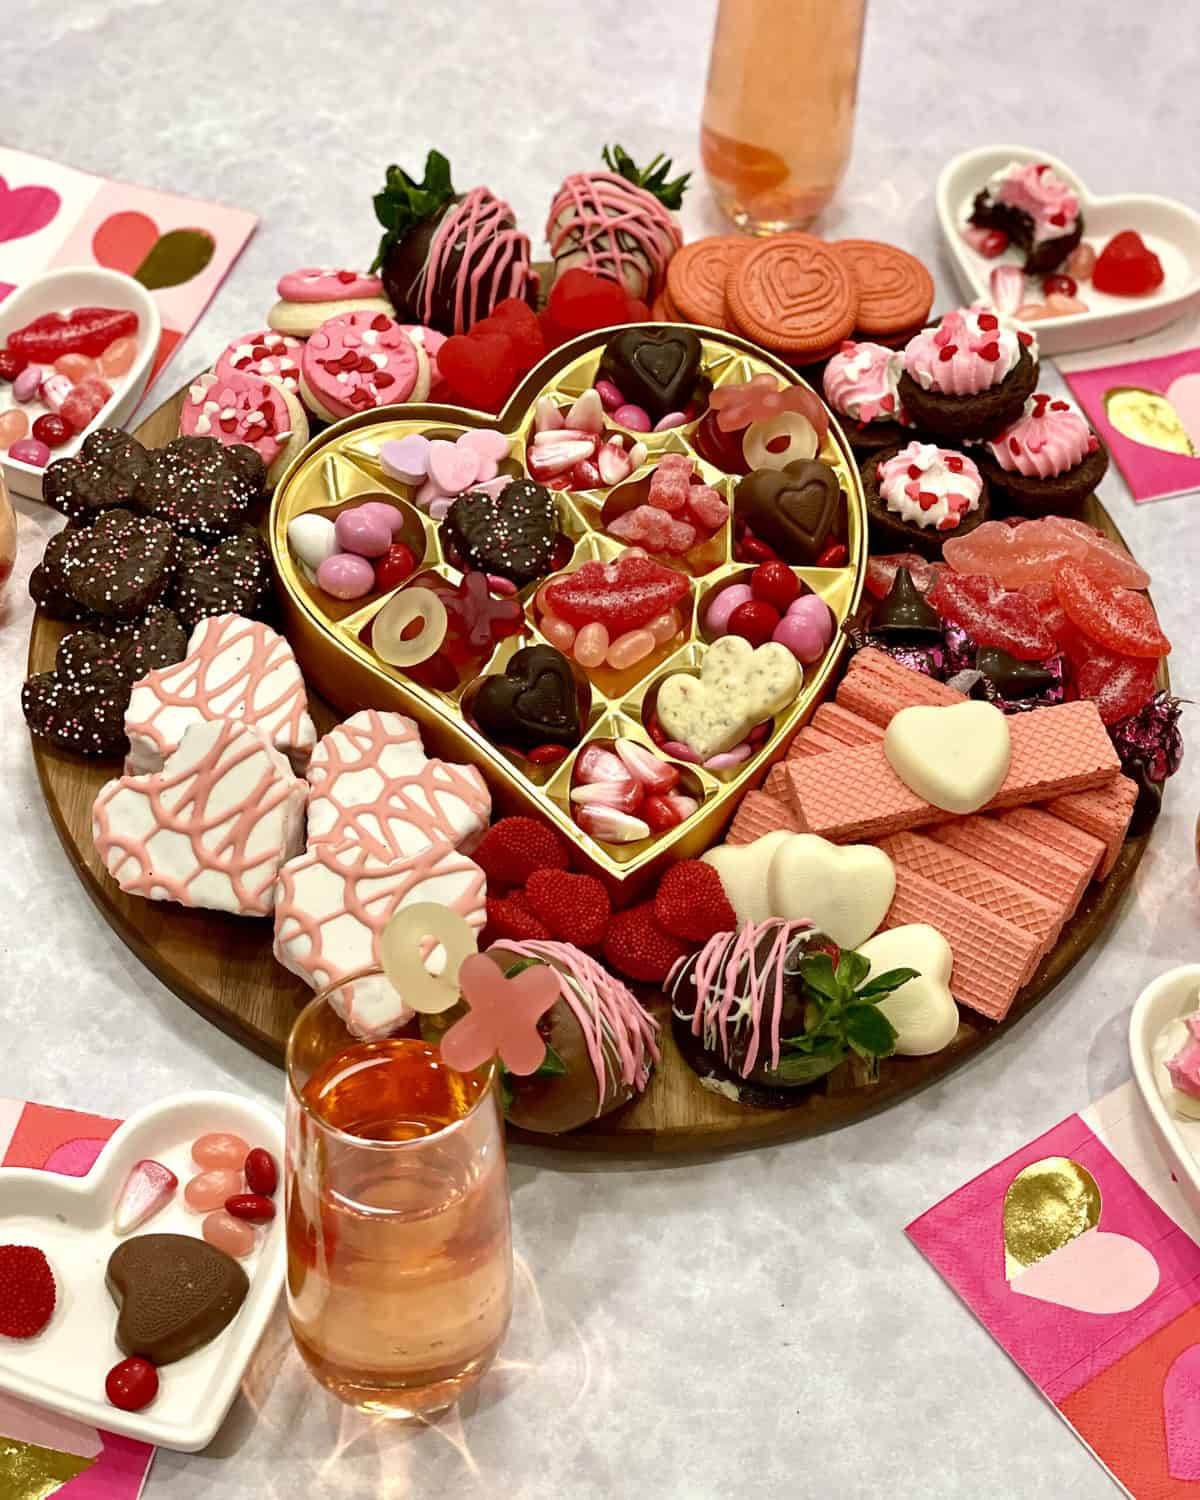 Galentine's Day Dessert Board with heart-shaped cakes, conversation hearts, M&Ms, pink and white sugar cookies